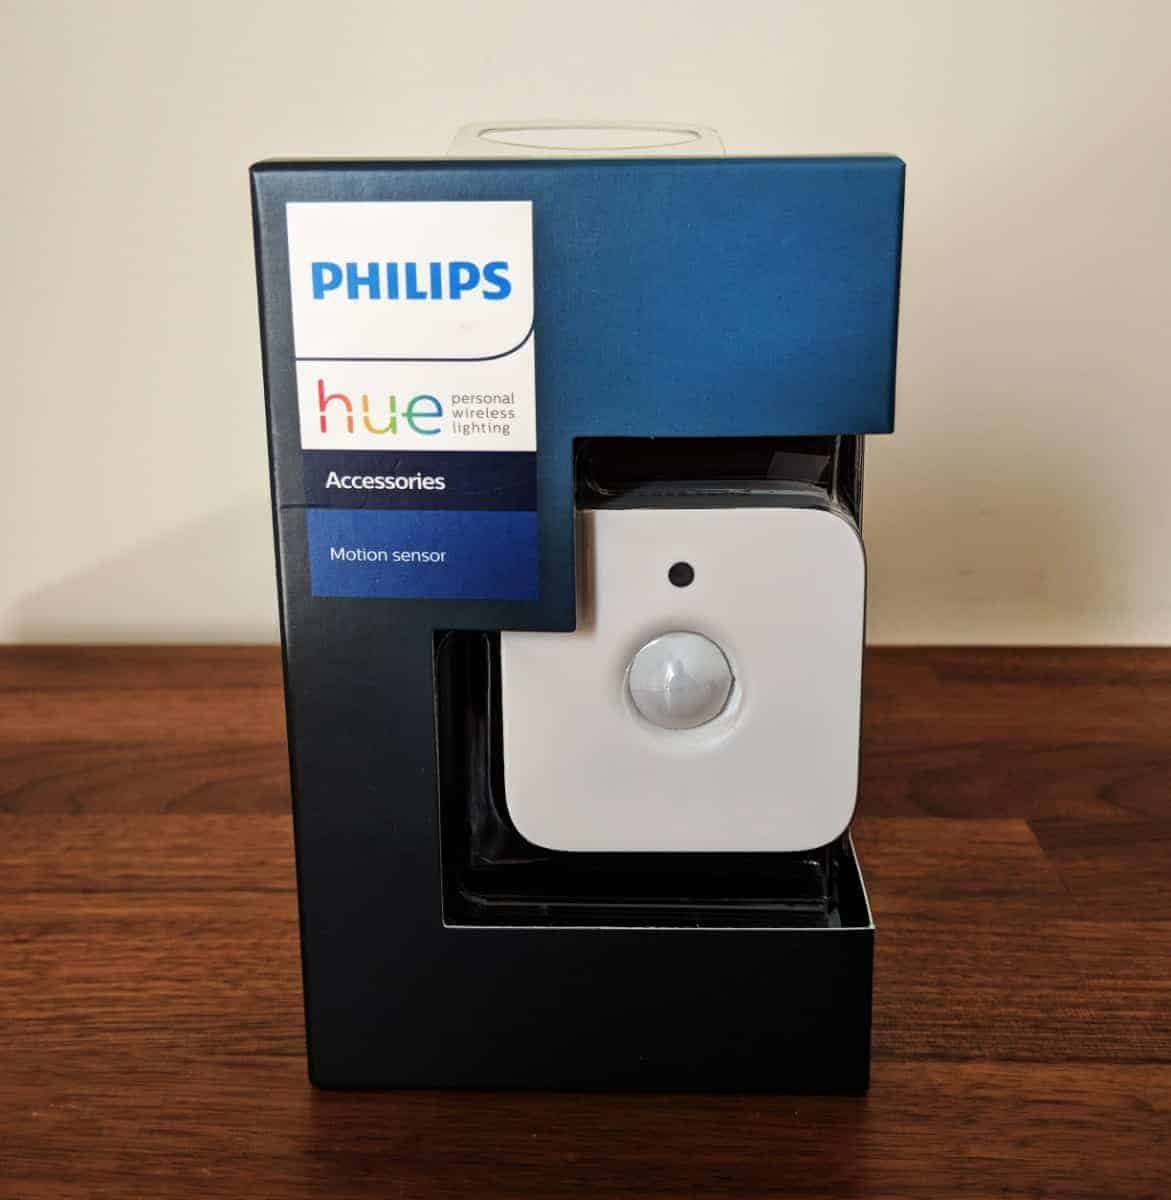 Philips-Hue-Sensor-Photos-01 Philips Hue Smart Lighting Review